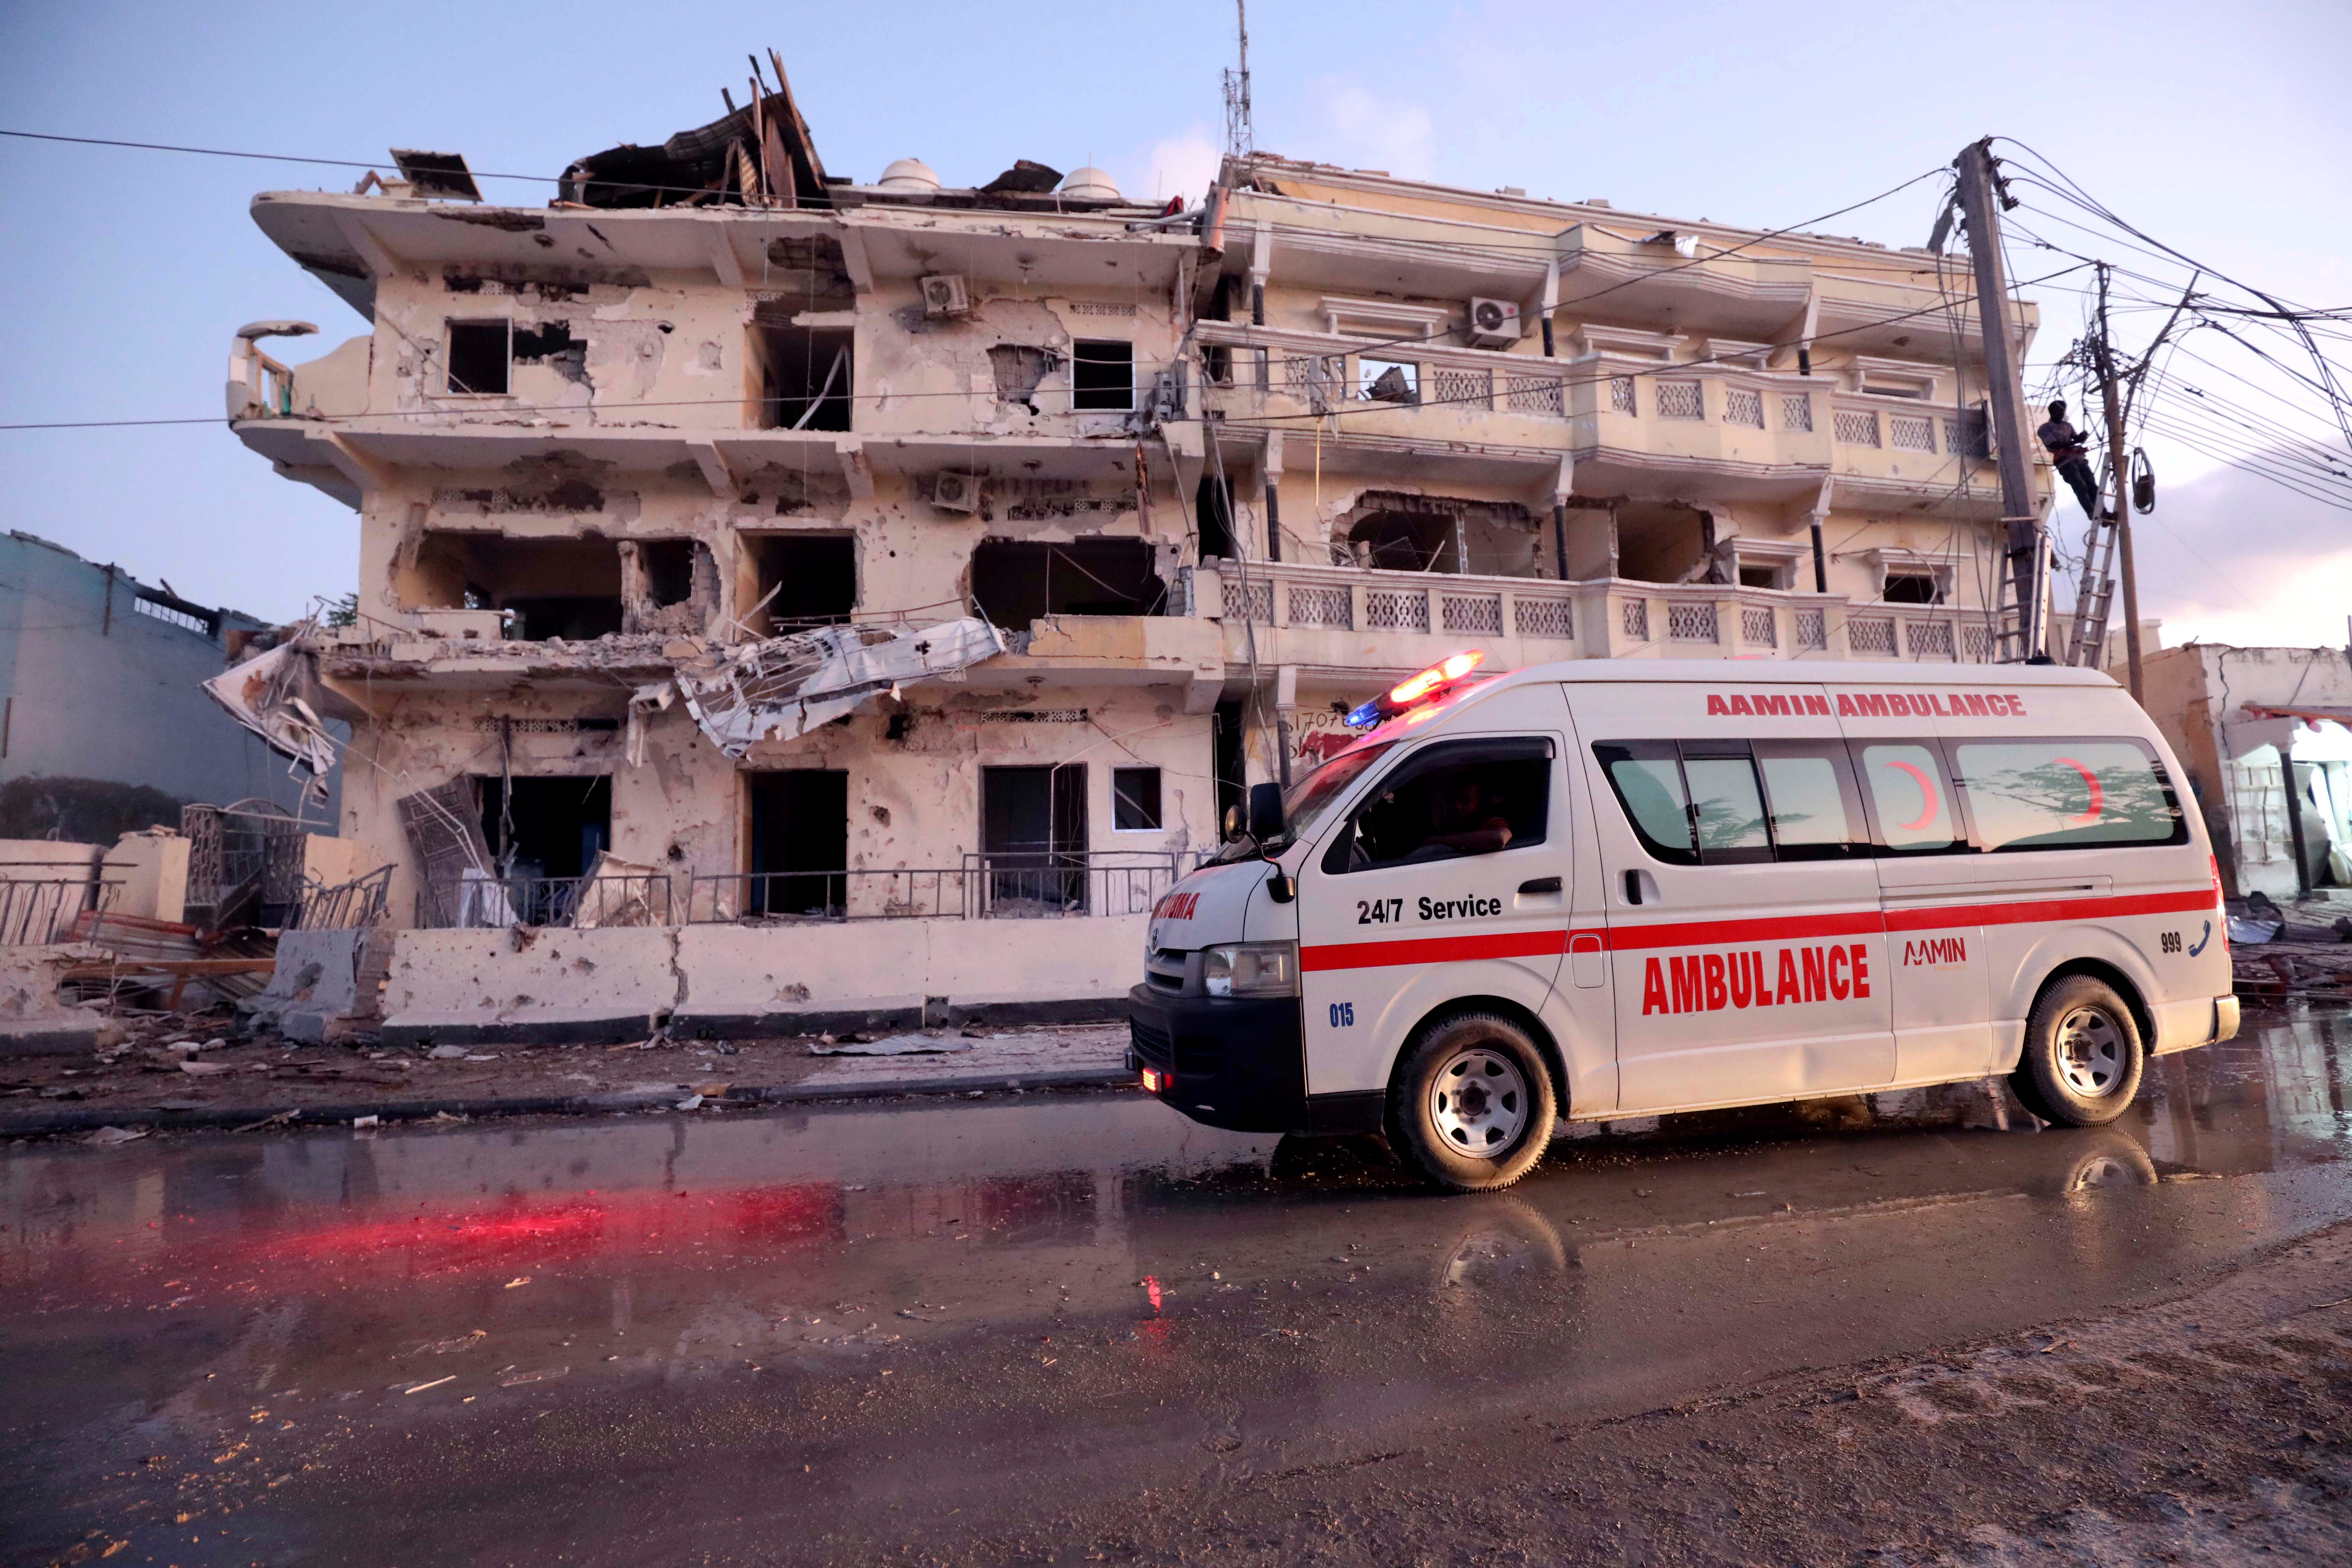 An ambulance passes in front of buildings damaged when a suicide car bomb exploded, targeting a Mogadishu hotel in a business center in Maka al-Mukaram street, Mogadishu, Somalia, March 1, 2019.